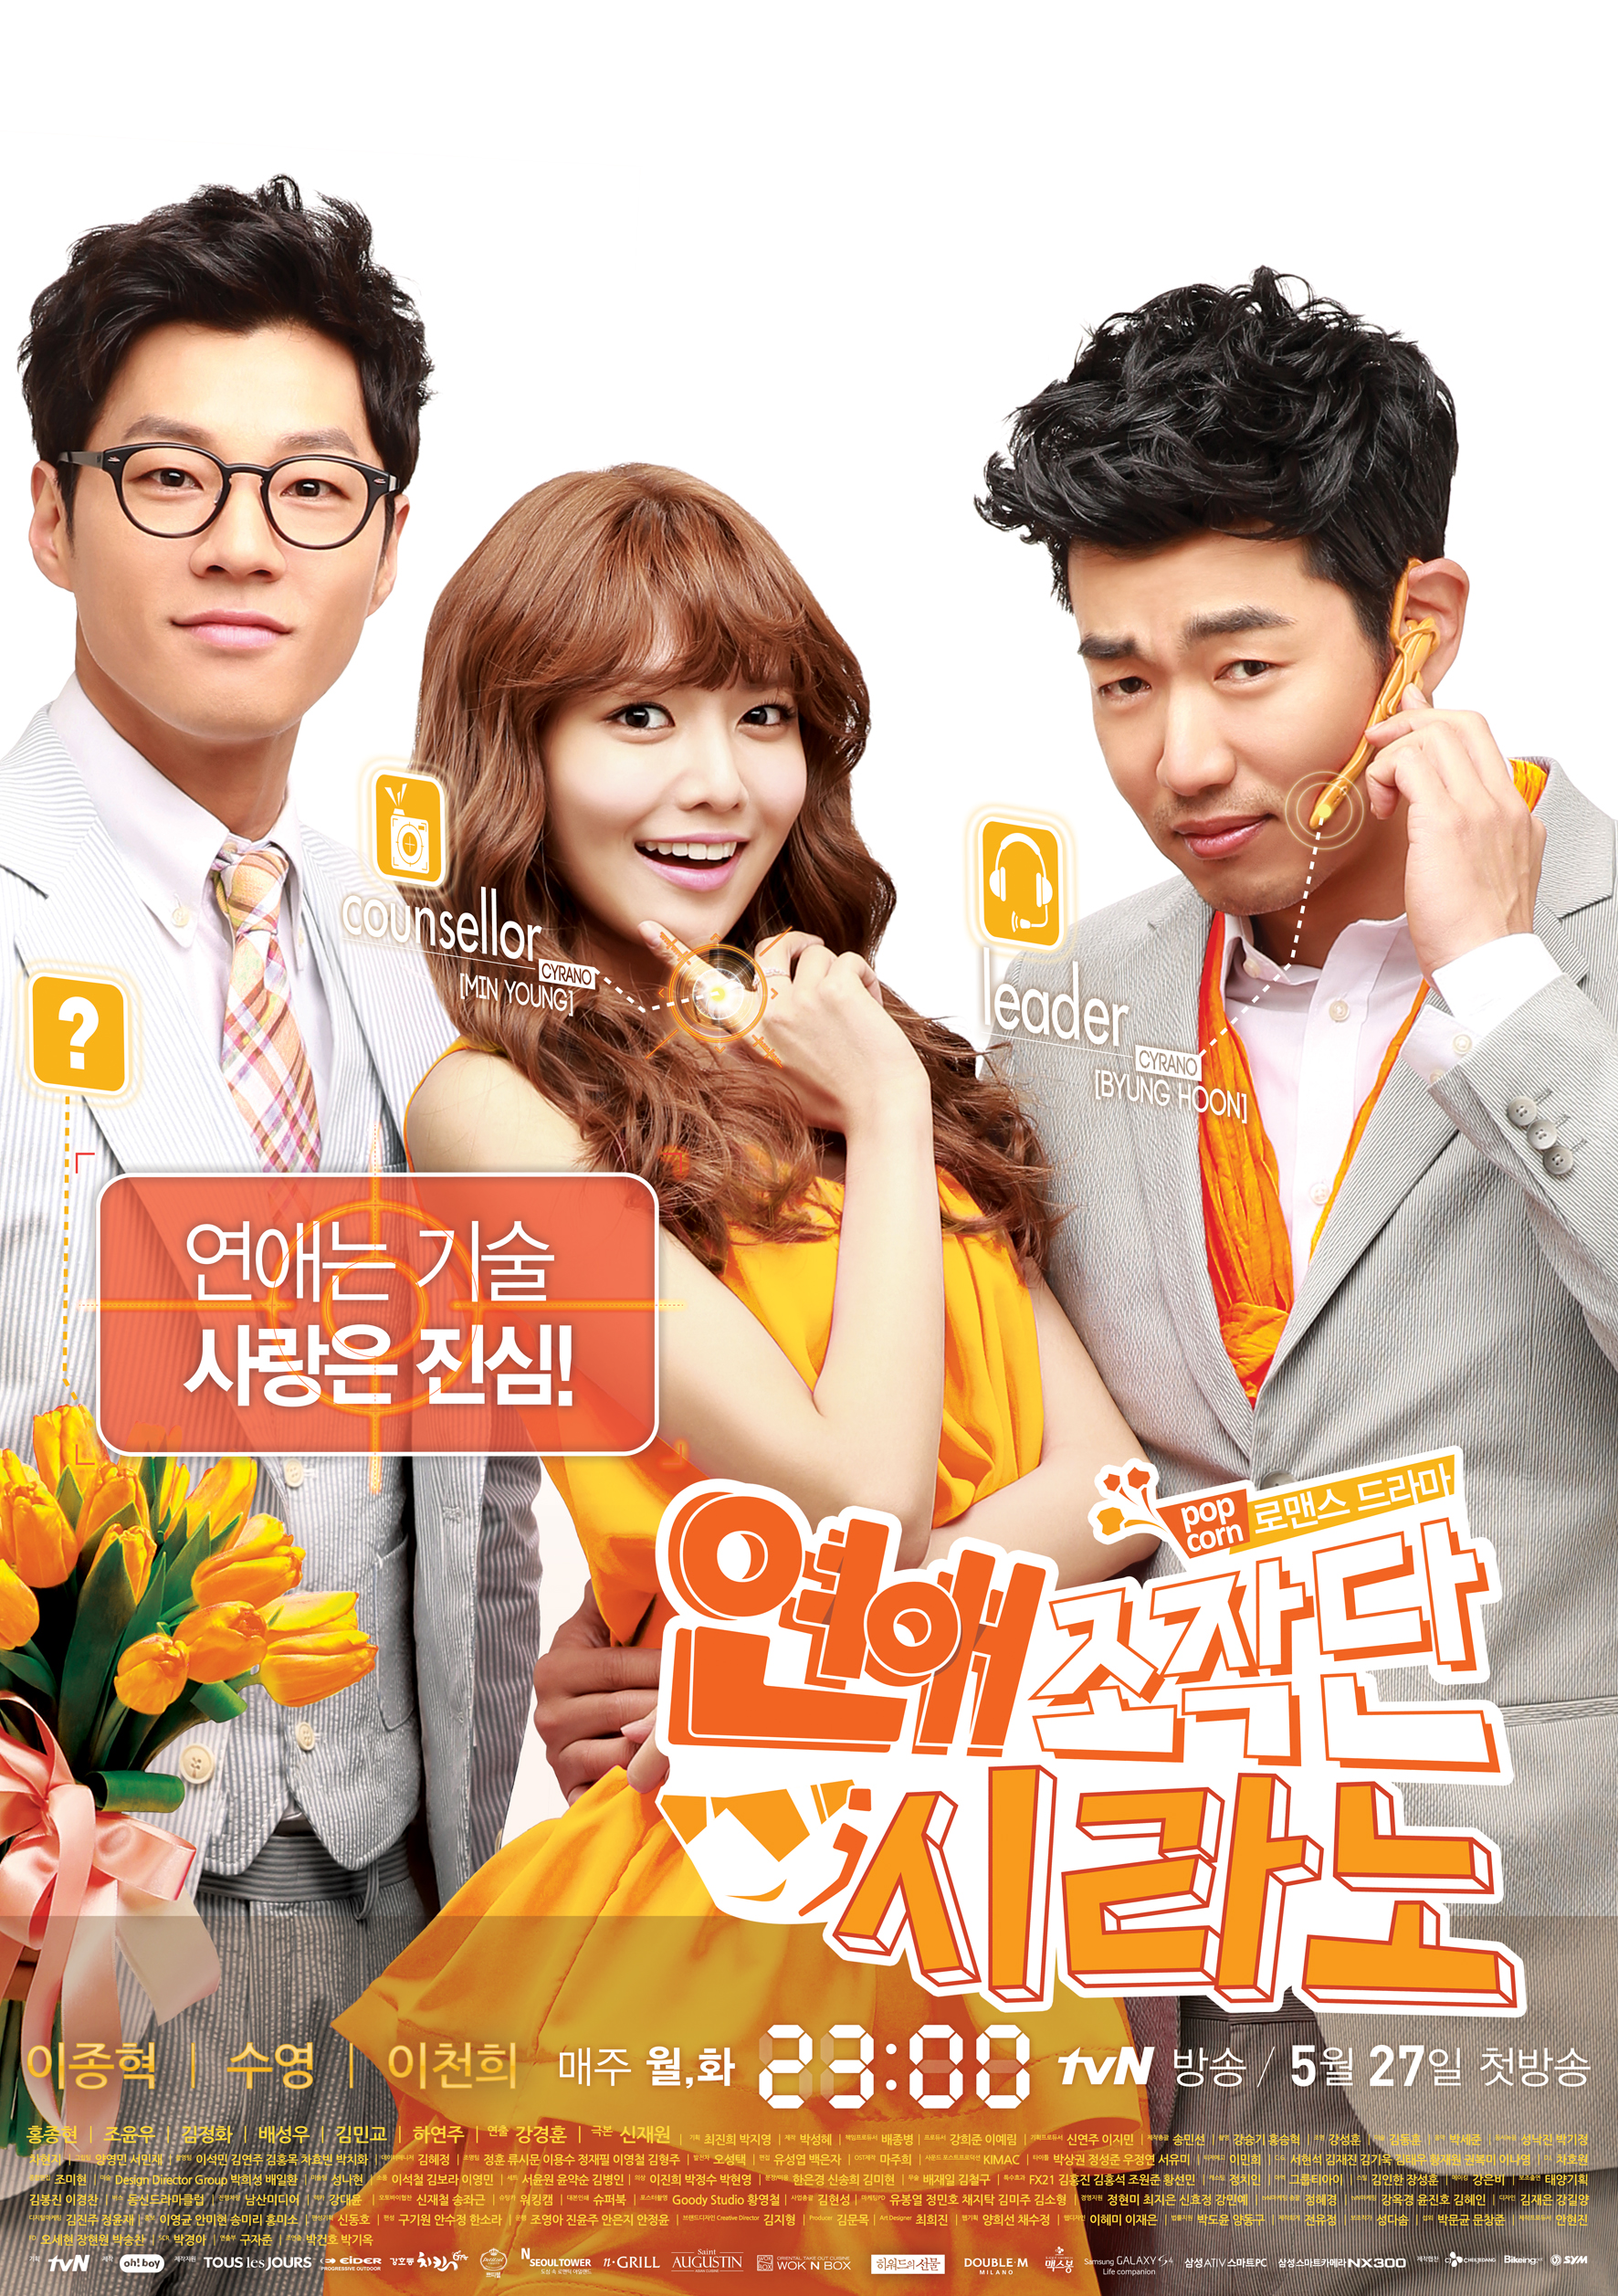 cyrano dating agency songs Free mp3 - ost dating agency cyrano 09 라디 something flutters music online.